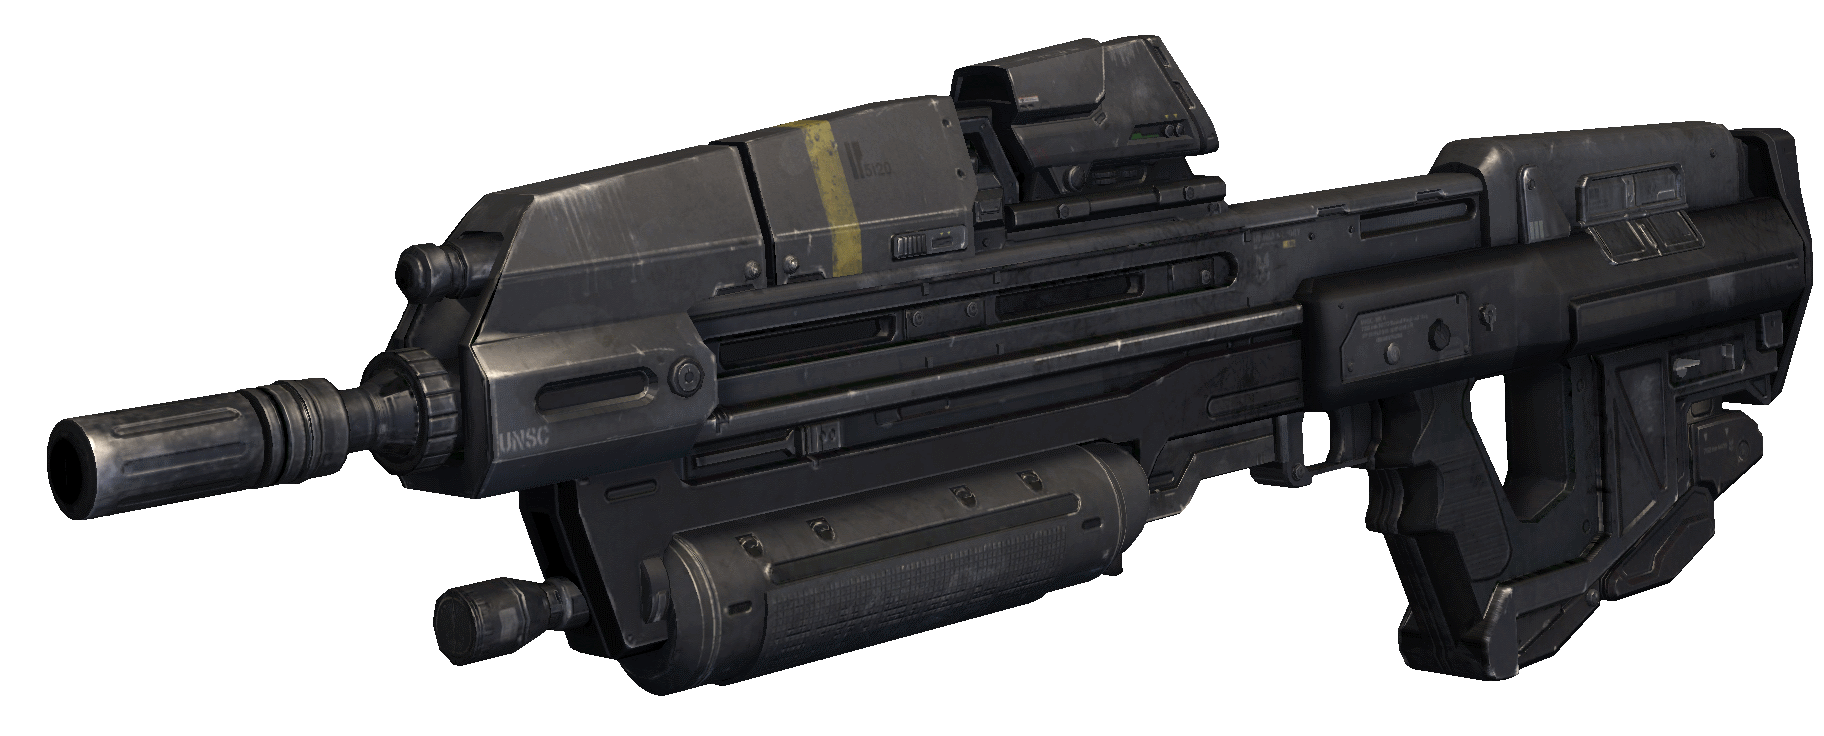 Halo 3 assault rifle pov png. Ma individual combat weapon